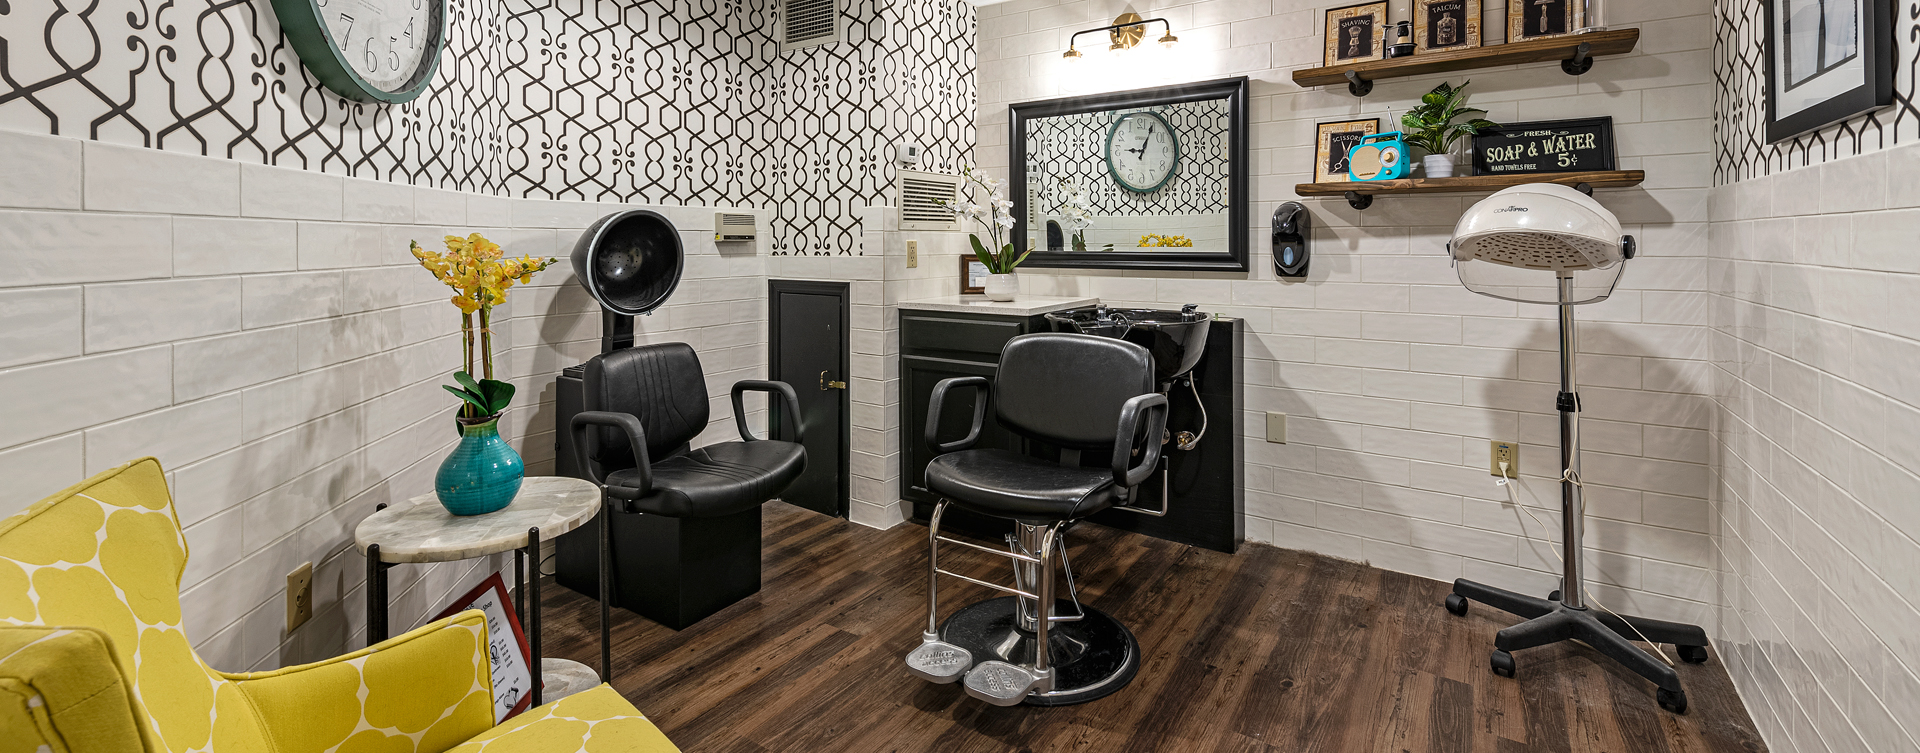 Receive personalized, at-home treatment from our stylist in the salon at Bickford of Bexley